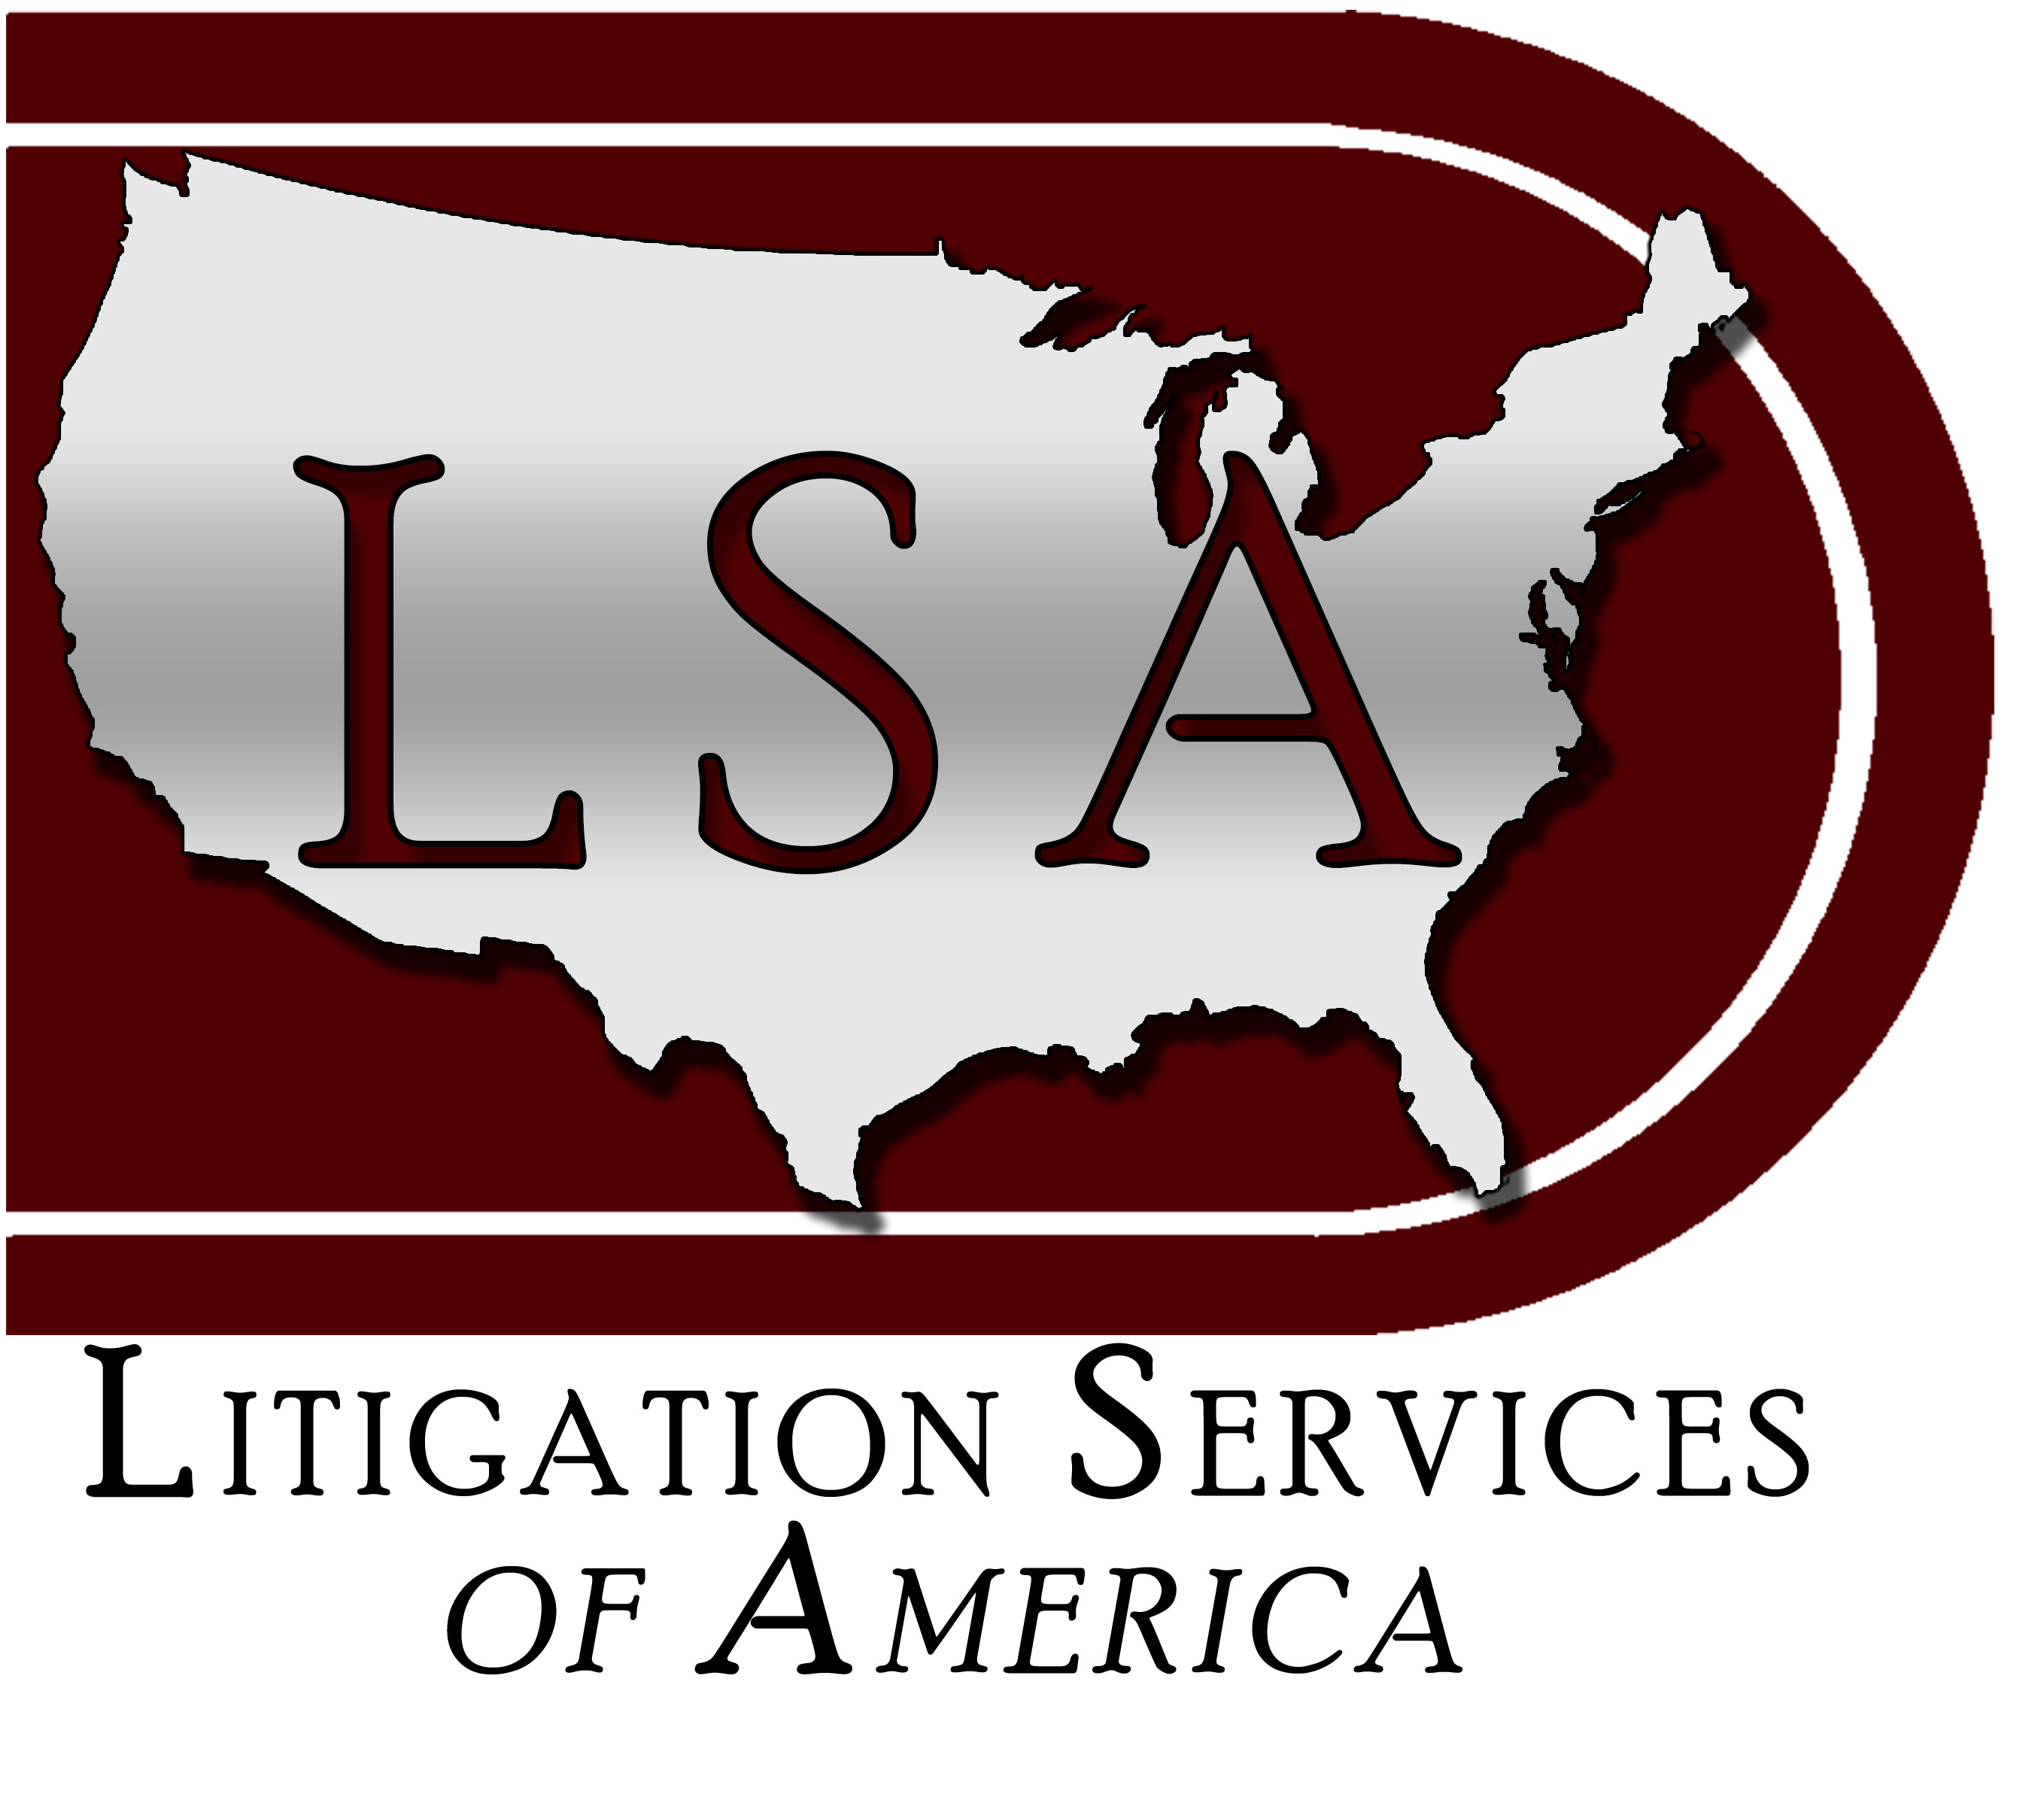 Litigation Services of America